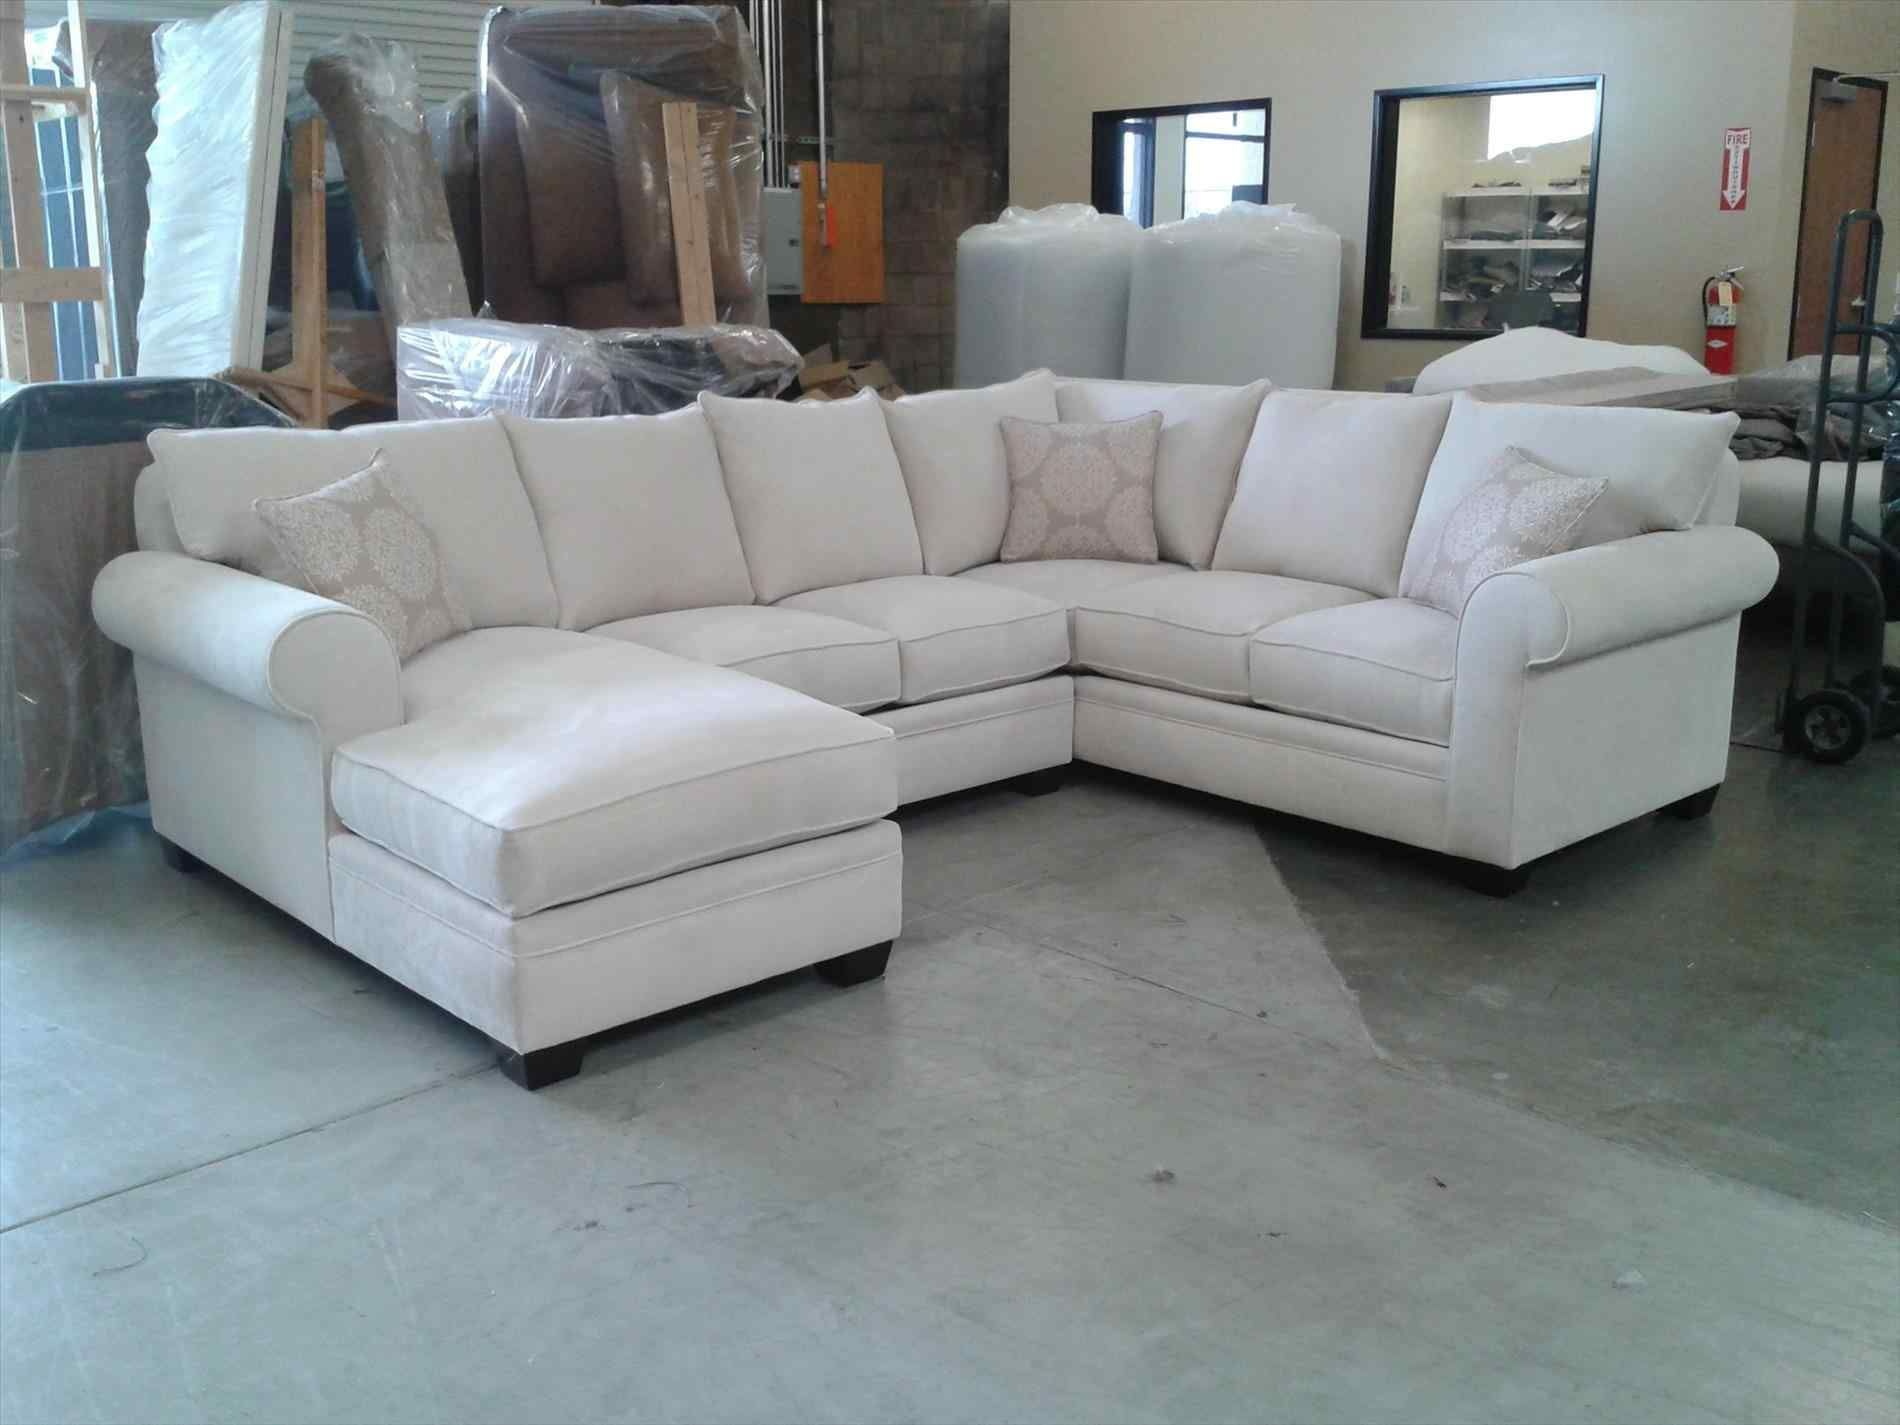 Chenille And Leather Sectional Sofa Contemporary Curved For Your Remarkable  With Cuddler Chaise Remarkable Chenille And Leather Sectional Sofa With  Cuddler ...